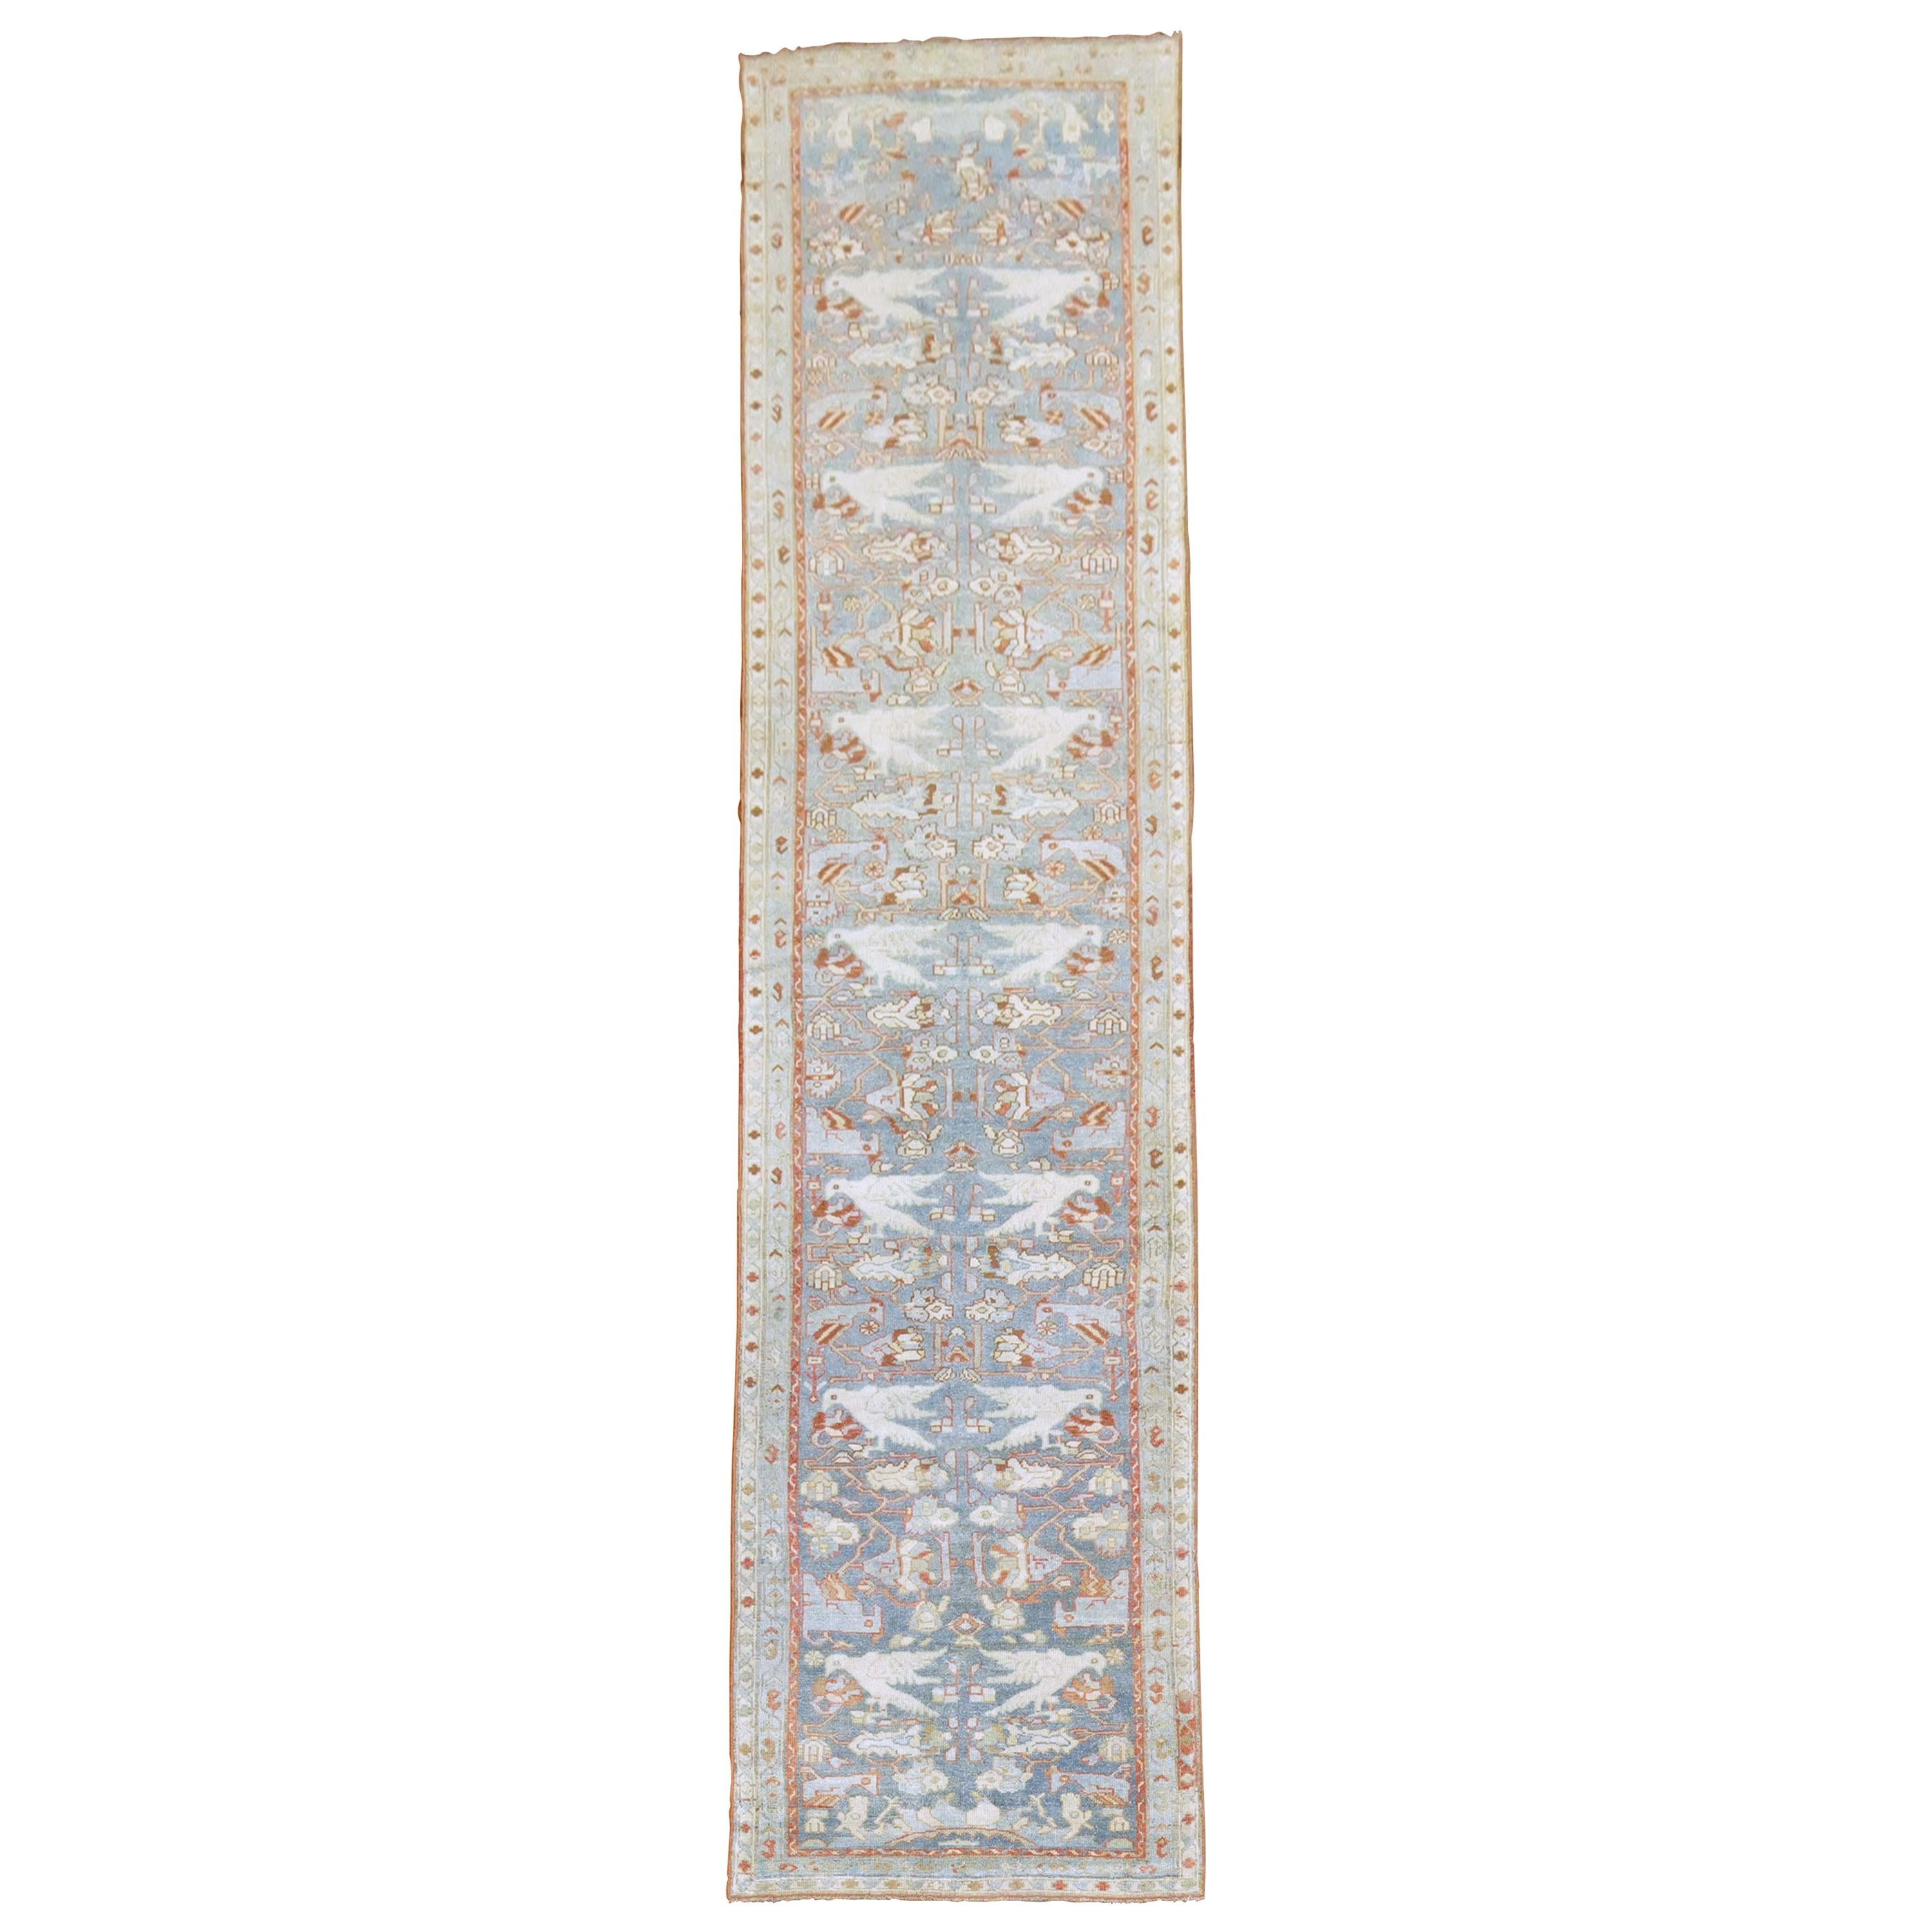 Pictorial Persian Blue Pigeon Malayer Runner